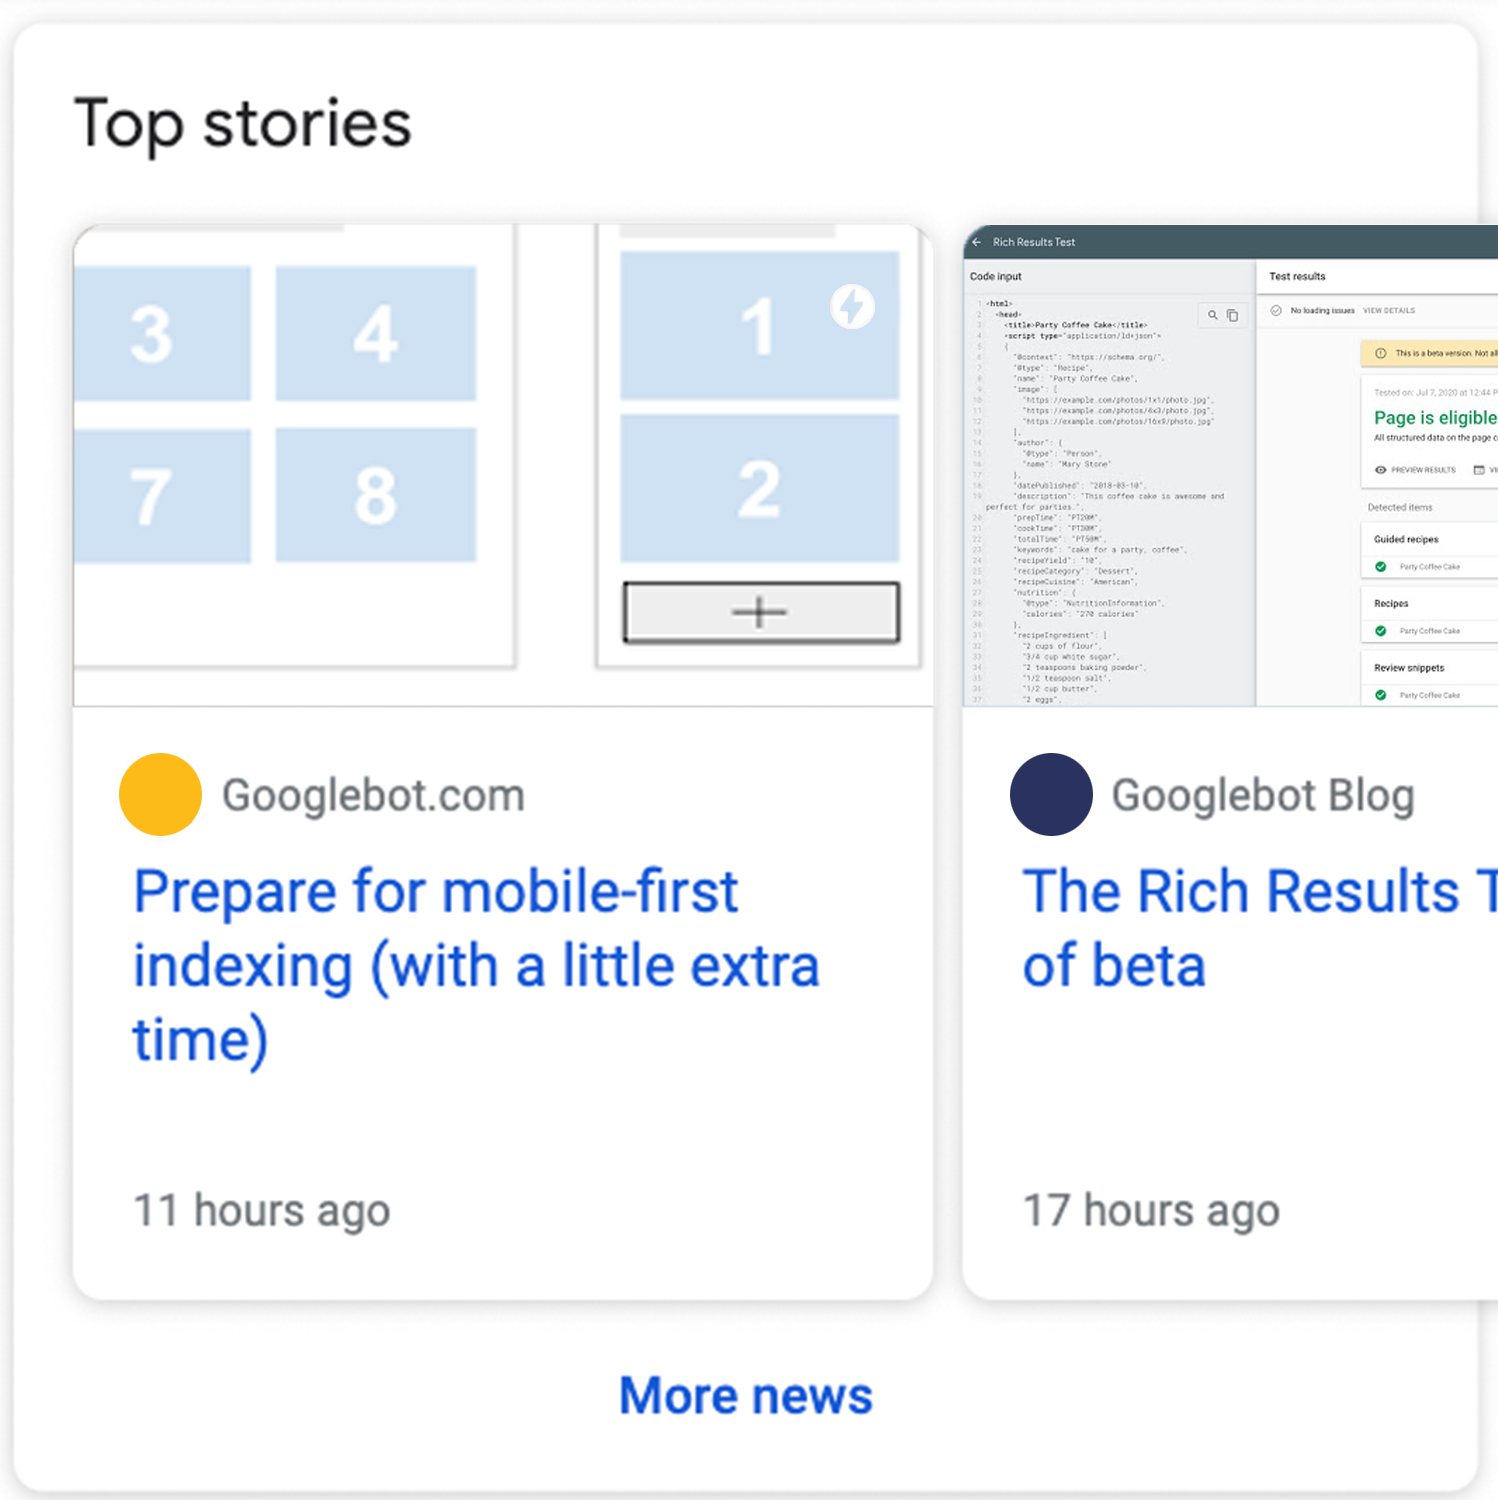 rich results, article category